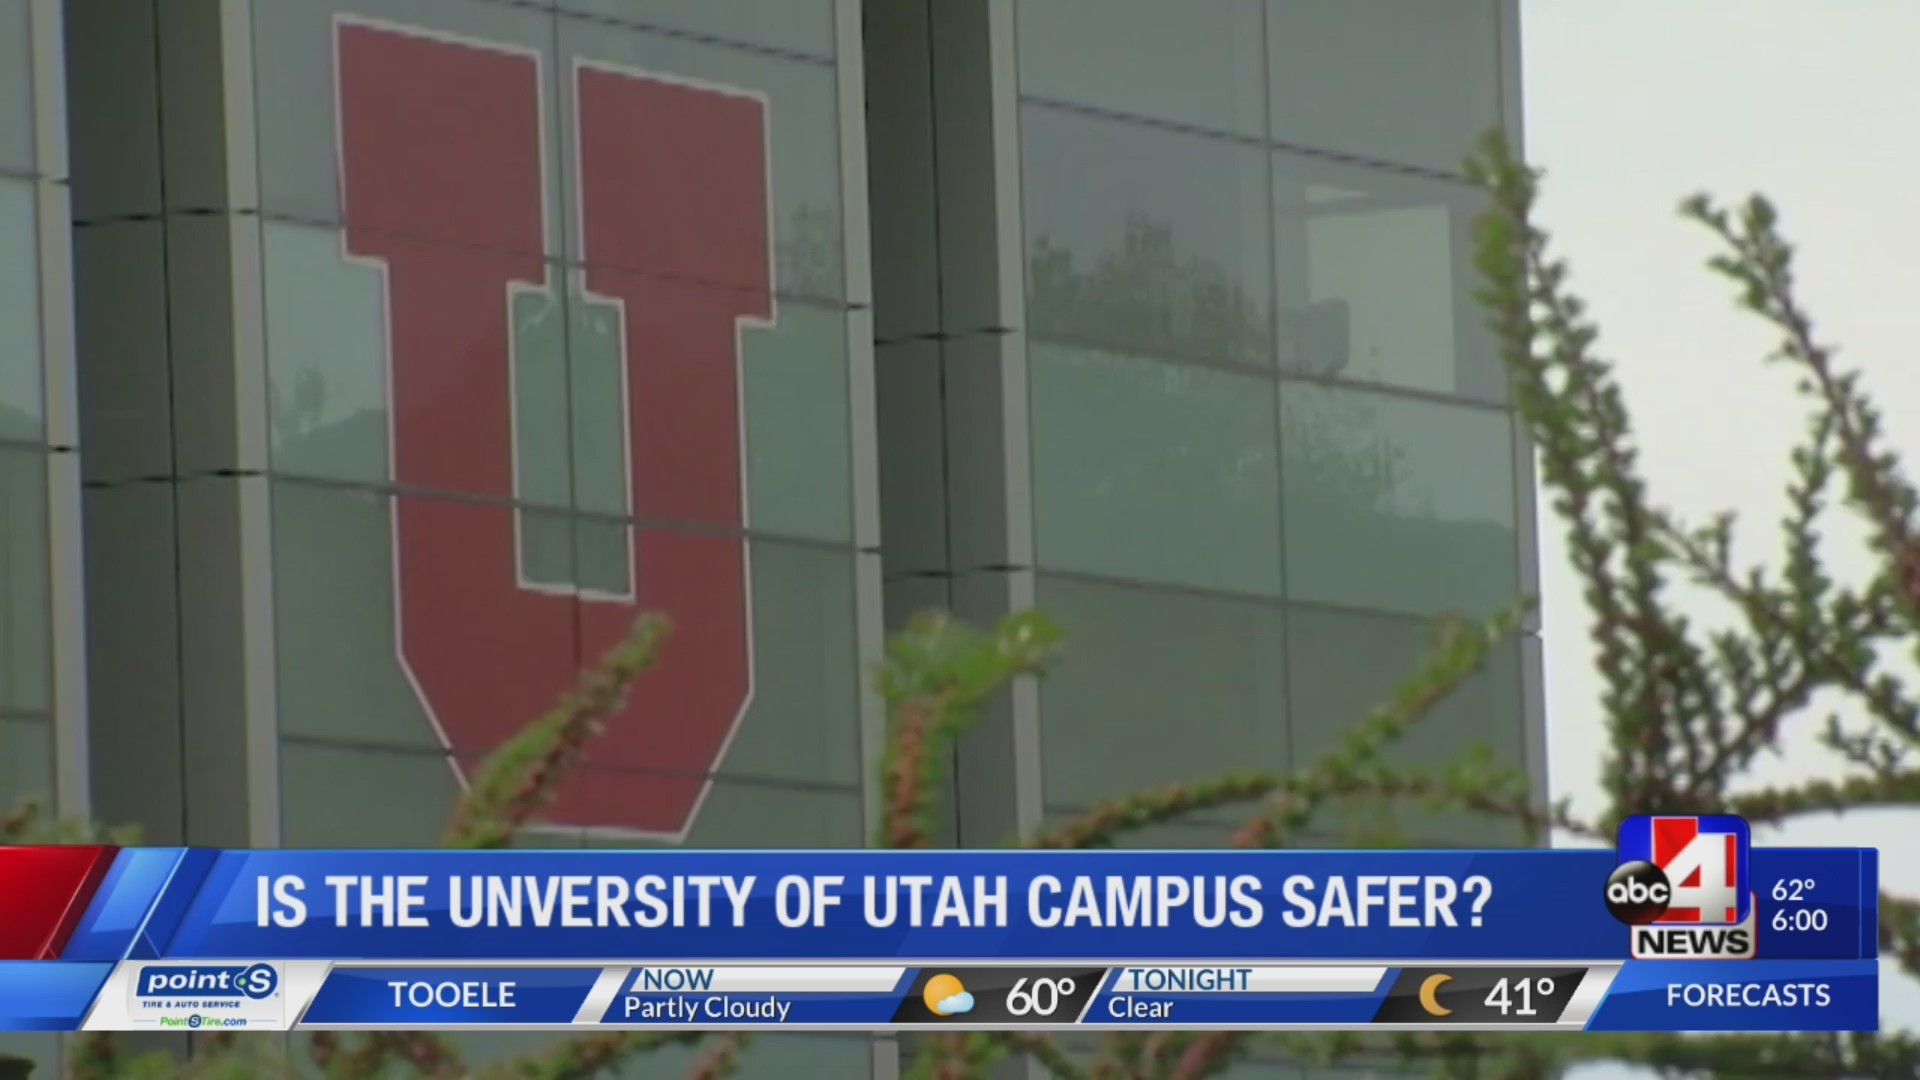 Review of campus safety at University of Utah